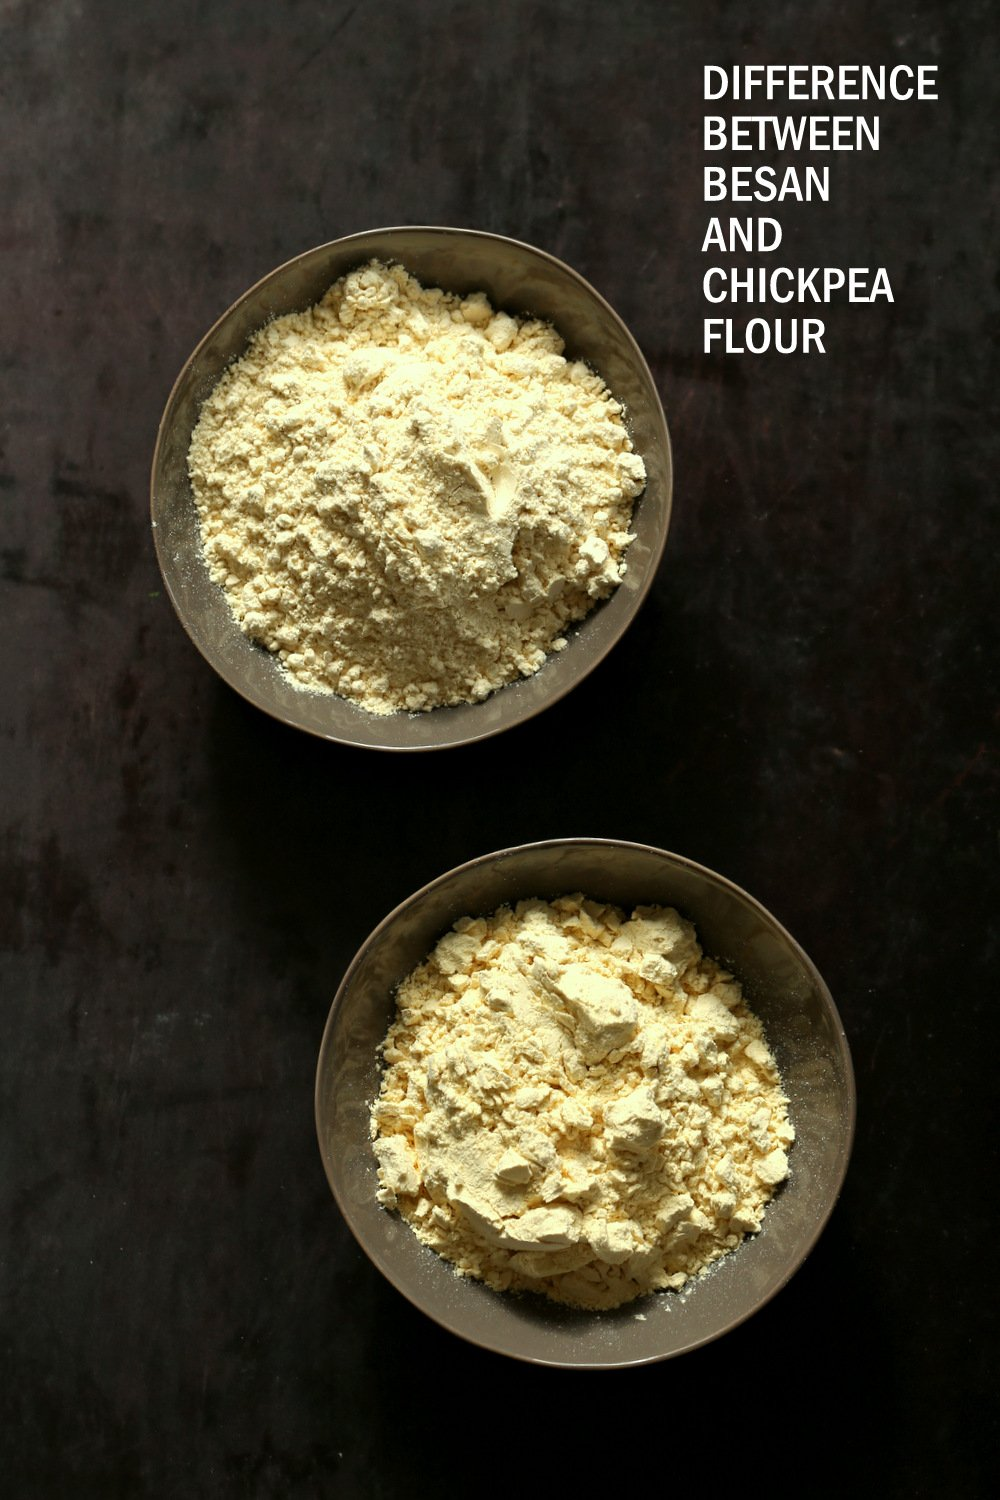 Chickpea flour and Besan in grey bowls for our post about the difference between besan and chickpea flour